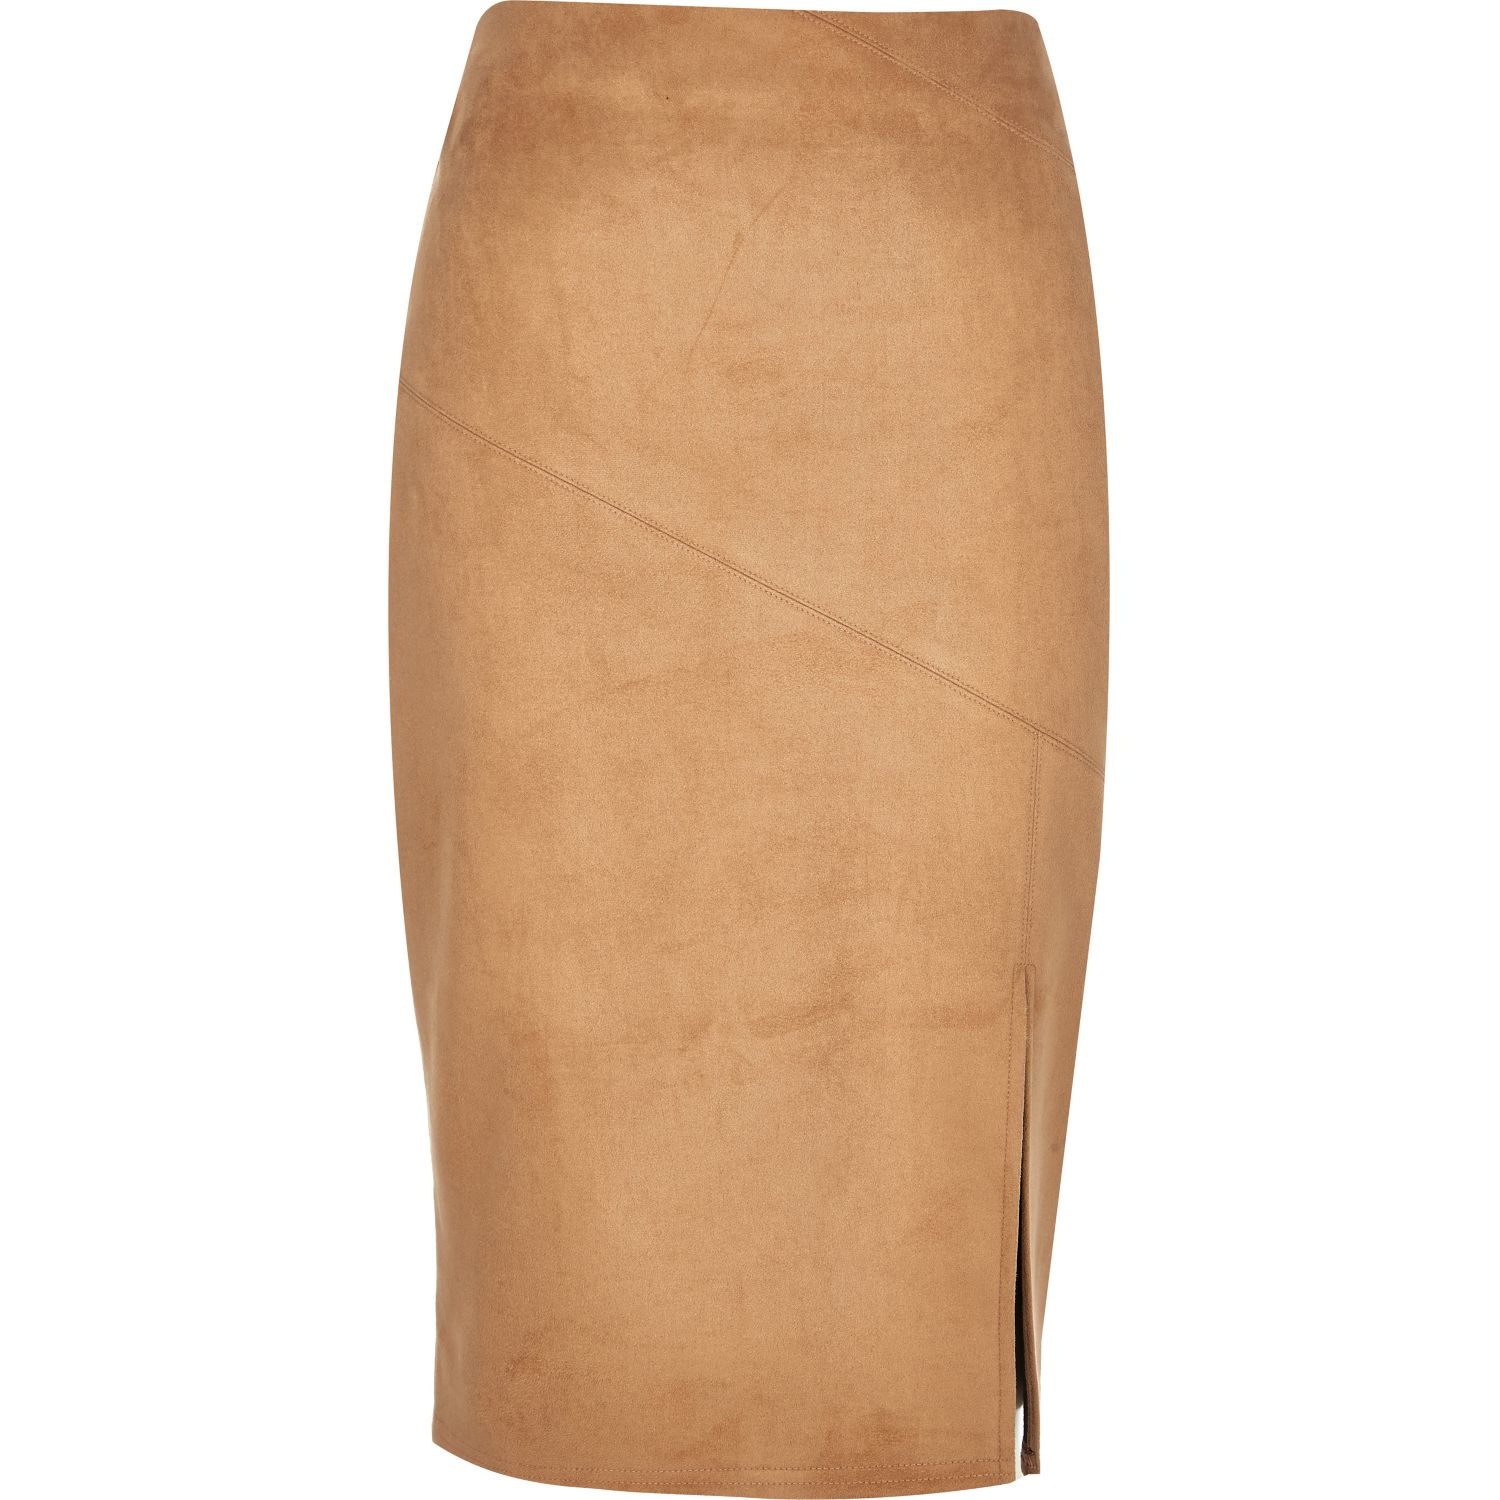 7f3bb24a9 River Island Tan Faux Suede Split Pencil Skirt in Brown - Lyst